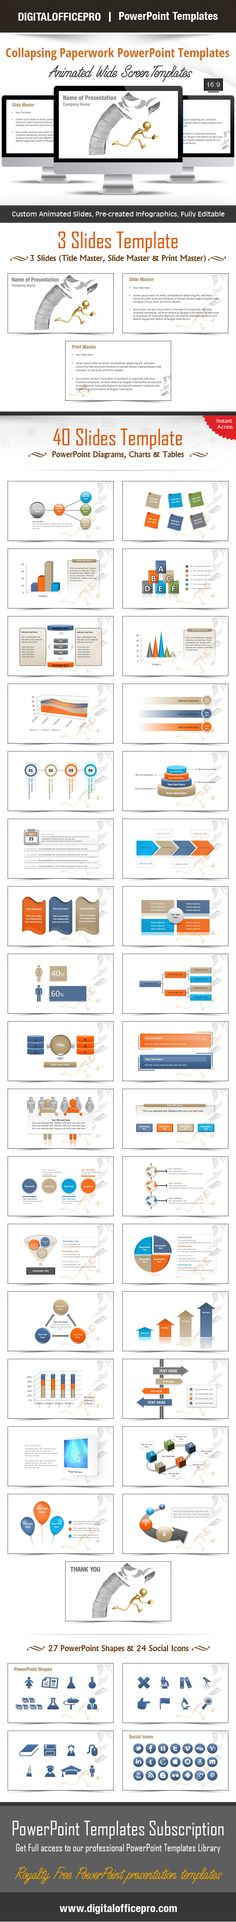 Impress and Engage your audience with Collapsing Paperwork PowerPoint Template and Collapsing Paperwork PowerPoint Backgrounds from DigitalOfficePro. Each template comes with a set of PowerPoint Diagrams, Charts & Shapes and are available for instant download.